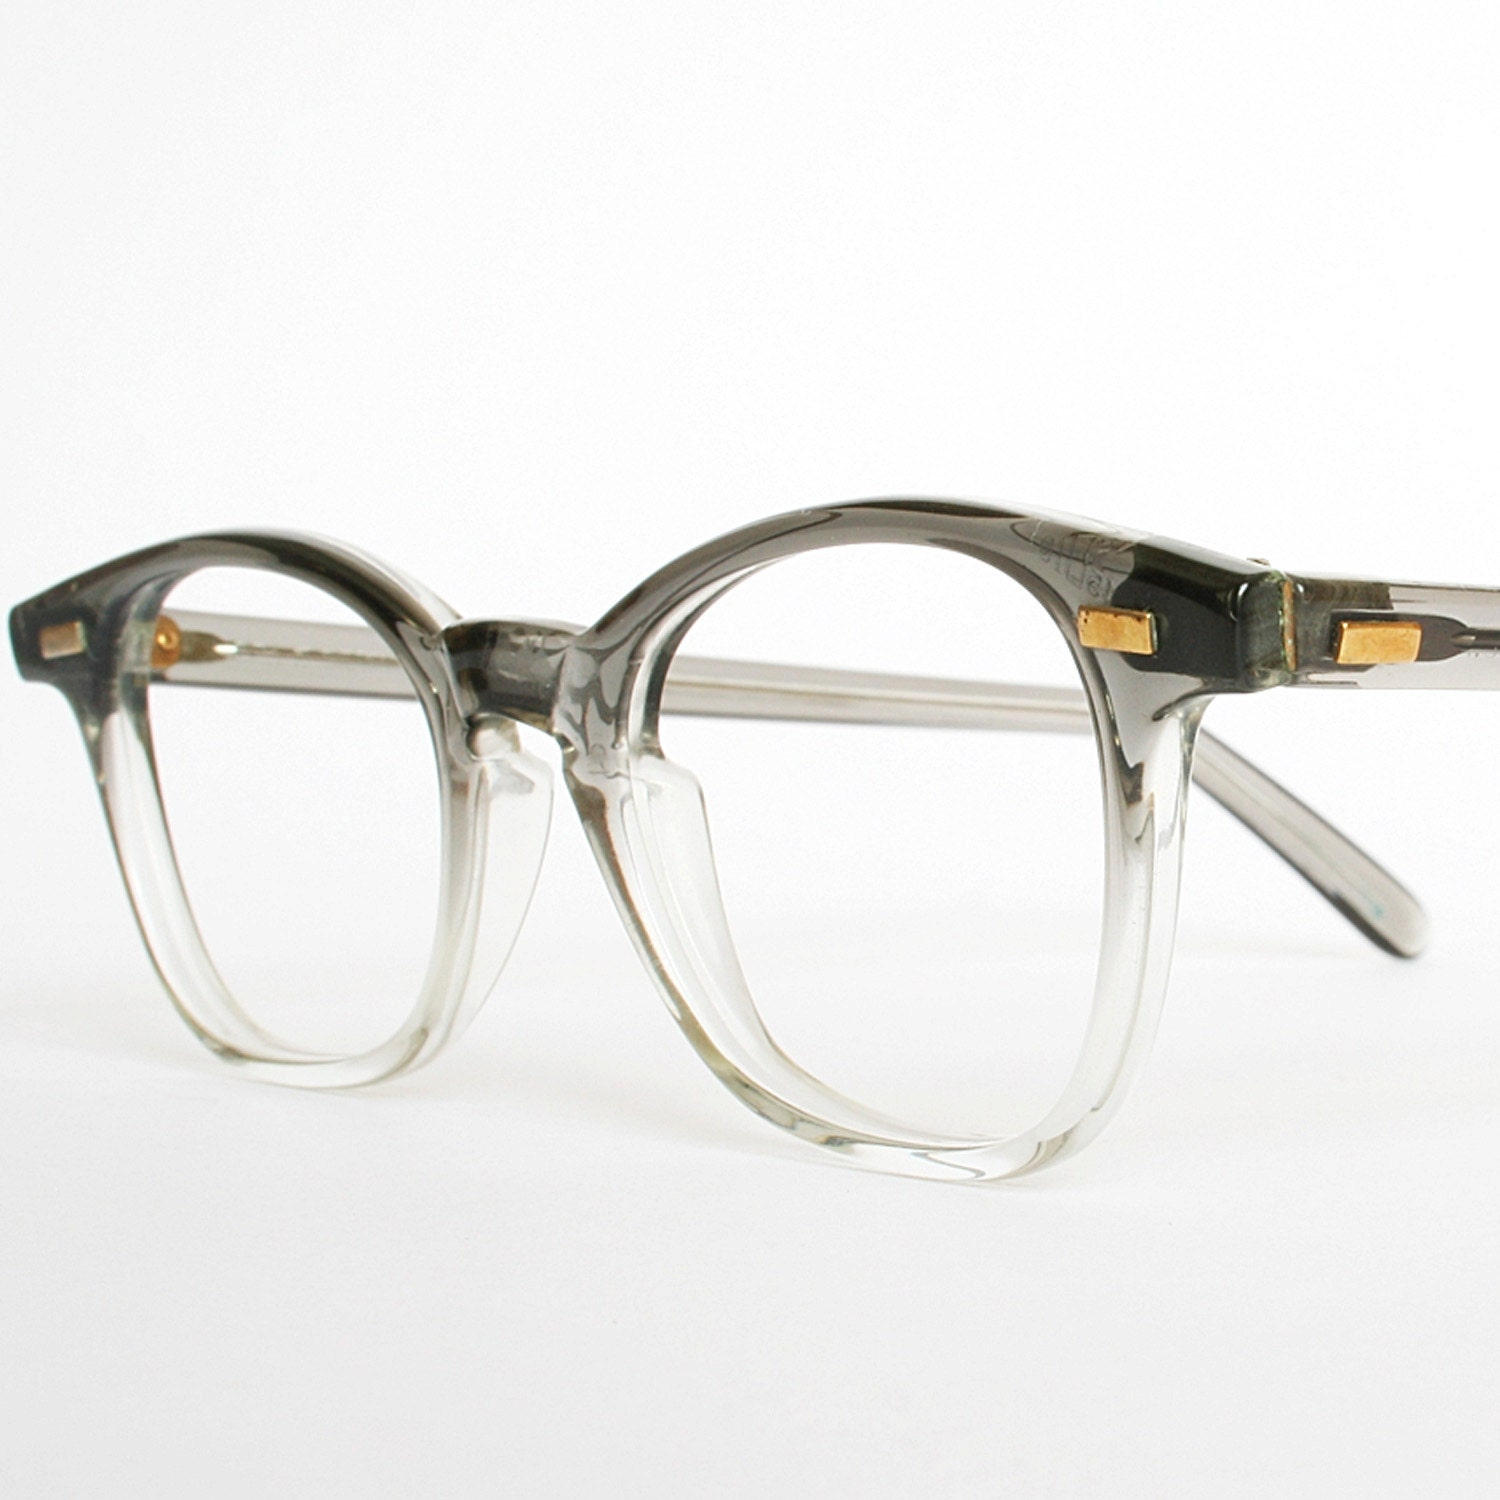 Old Glasses Frames New Lenses : Vintage 50s Mens Grey Fades Eyeglasses New Old Stock